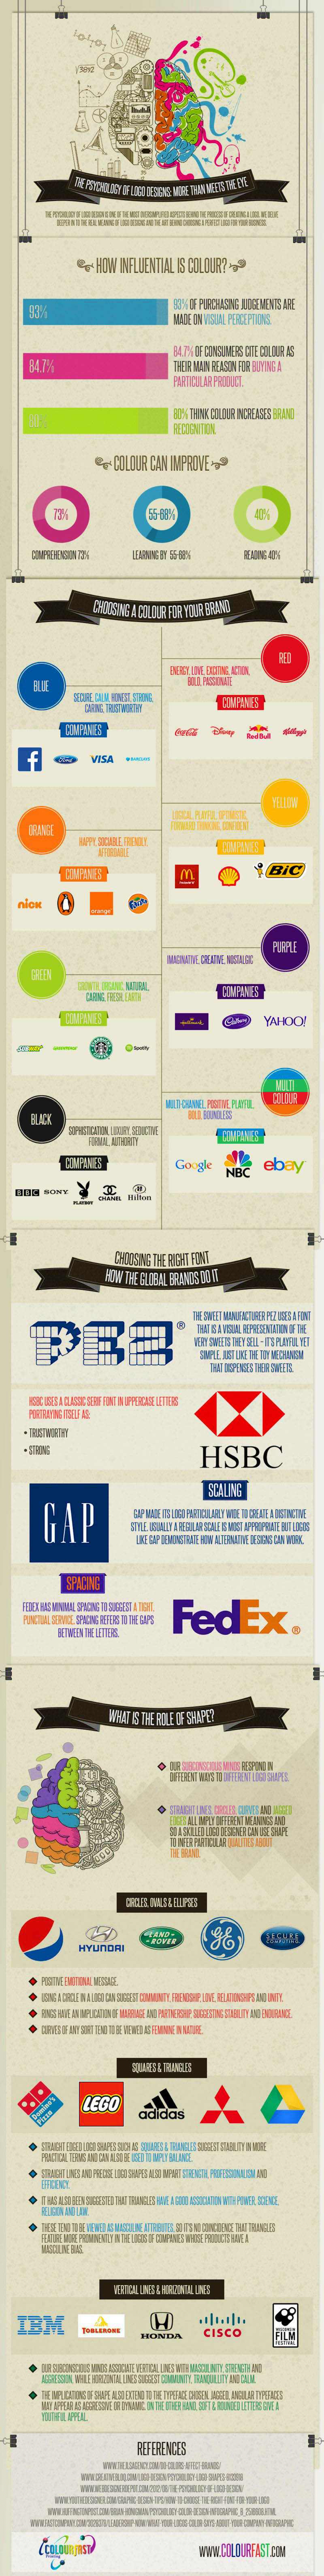 Infographic-The-Psychology-of-Logo-Design